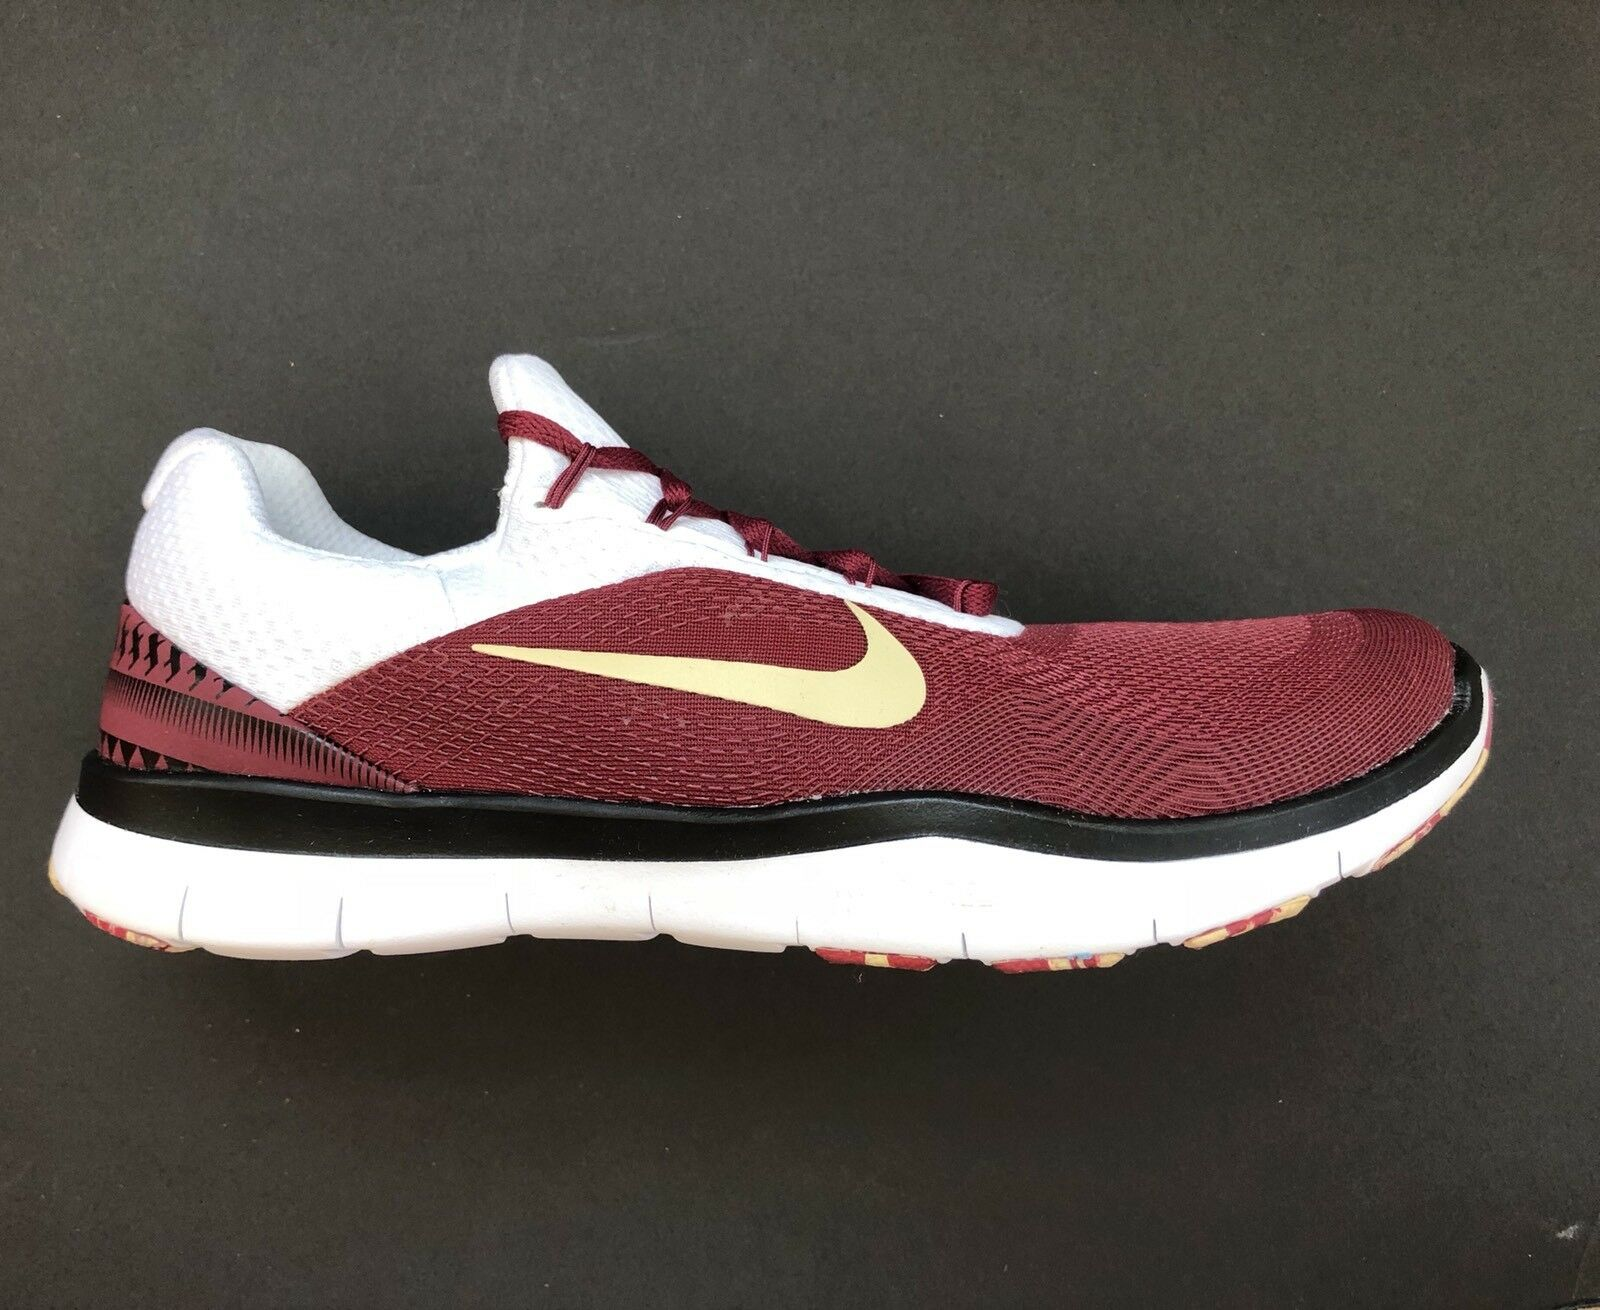 Nike Florida State Seminoles Free Trainer V7 AA0881-604 Week Zero Shoes AA0881-604 V7 Size 12 90a8d4